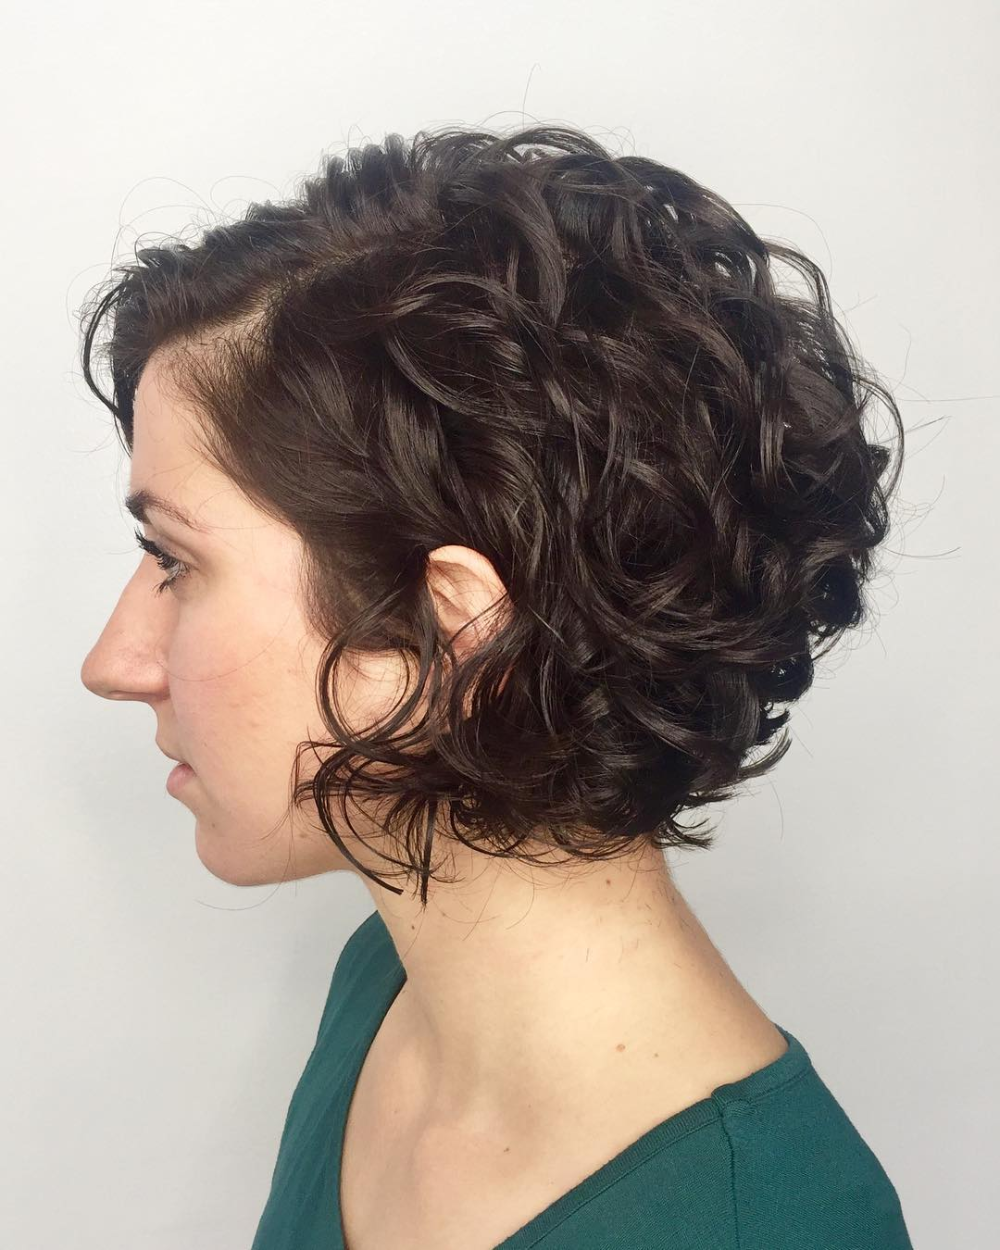 40 Stunning Curly Short Haircuts - July 2019 IG Co